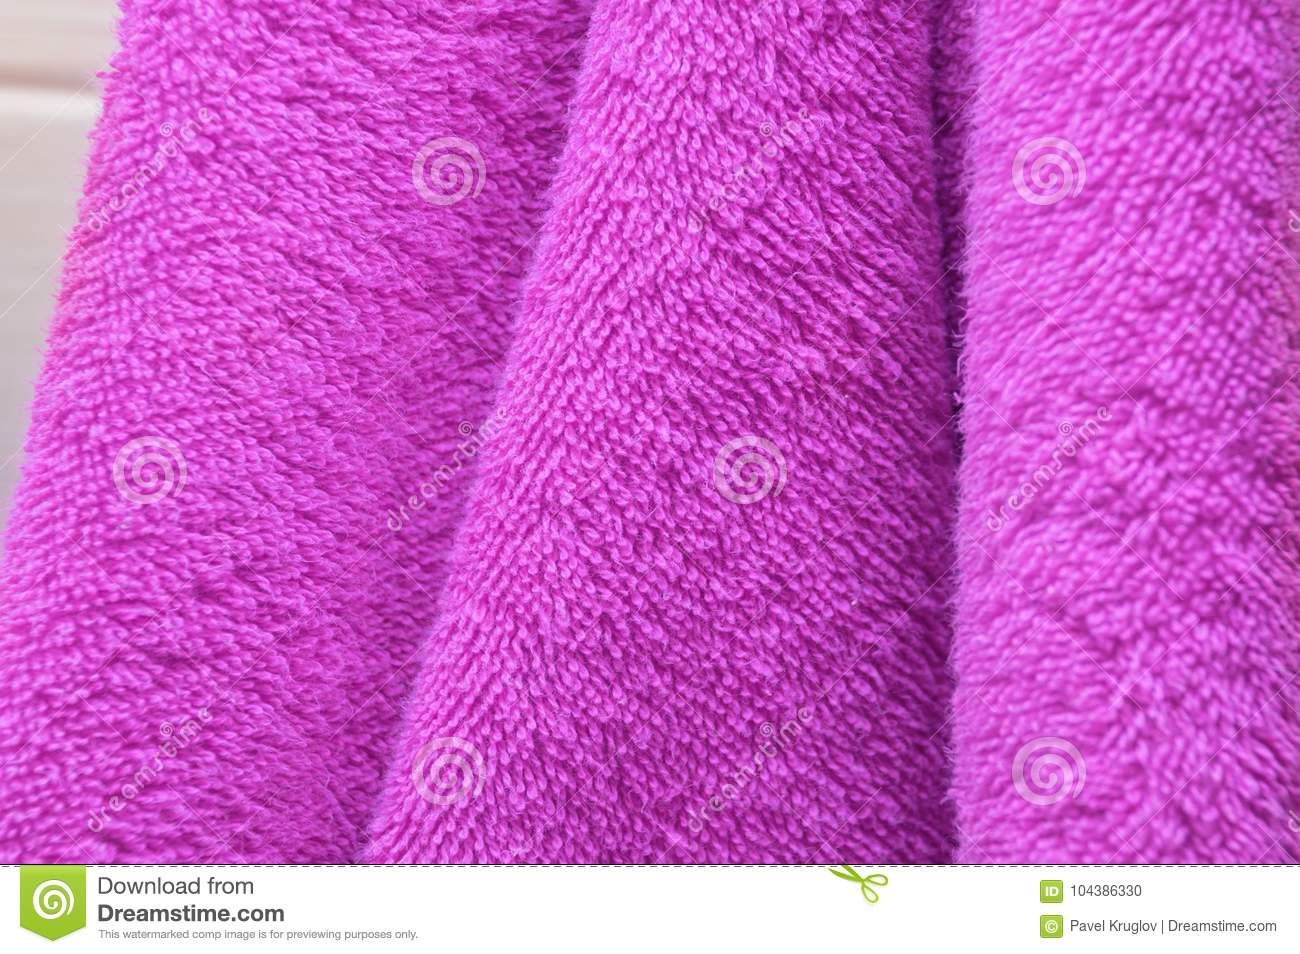 Enjoyable Dry Bath Towels Are Purple In The Bathroom Stock Photo Complete Home Design Collection Barbaintelli Responsecom